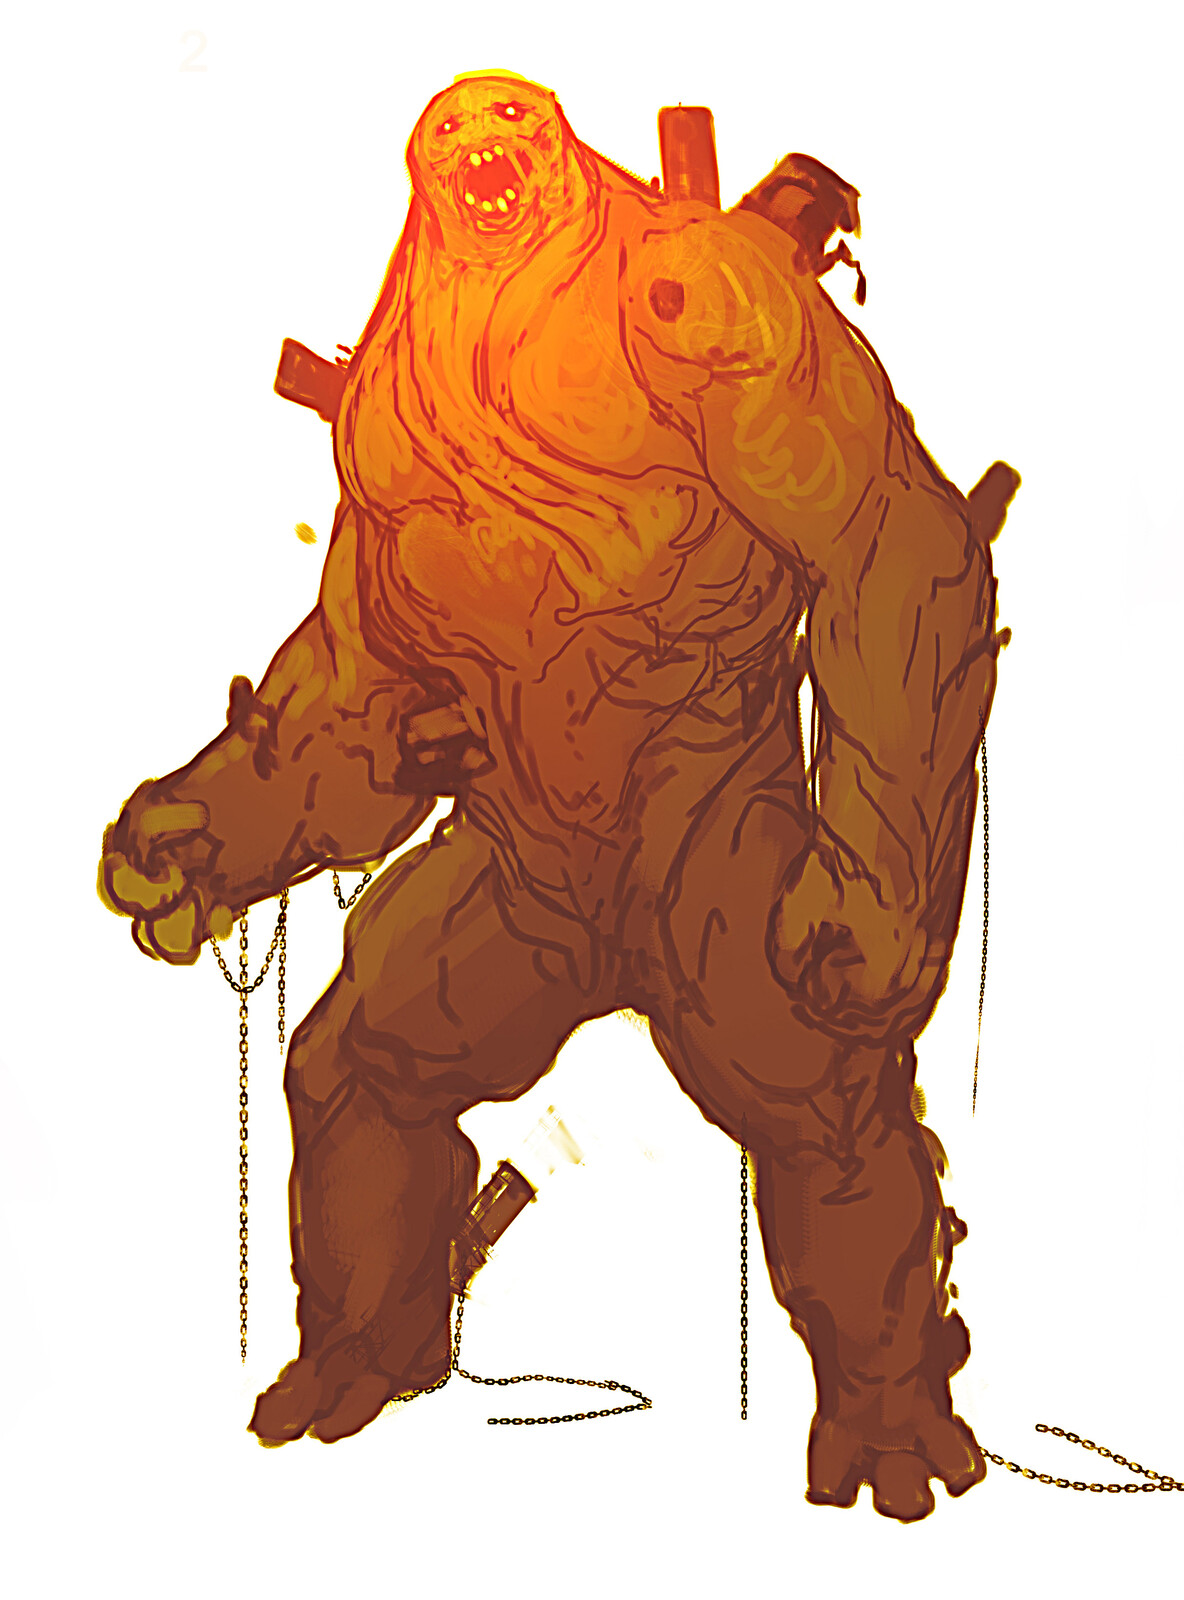 Spiderman Far from Home: Molten Man Design Sketches